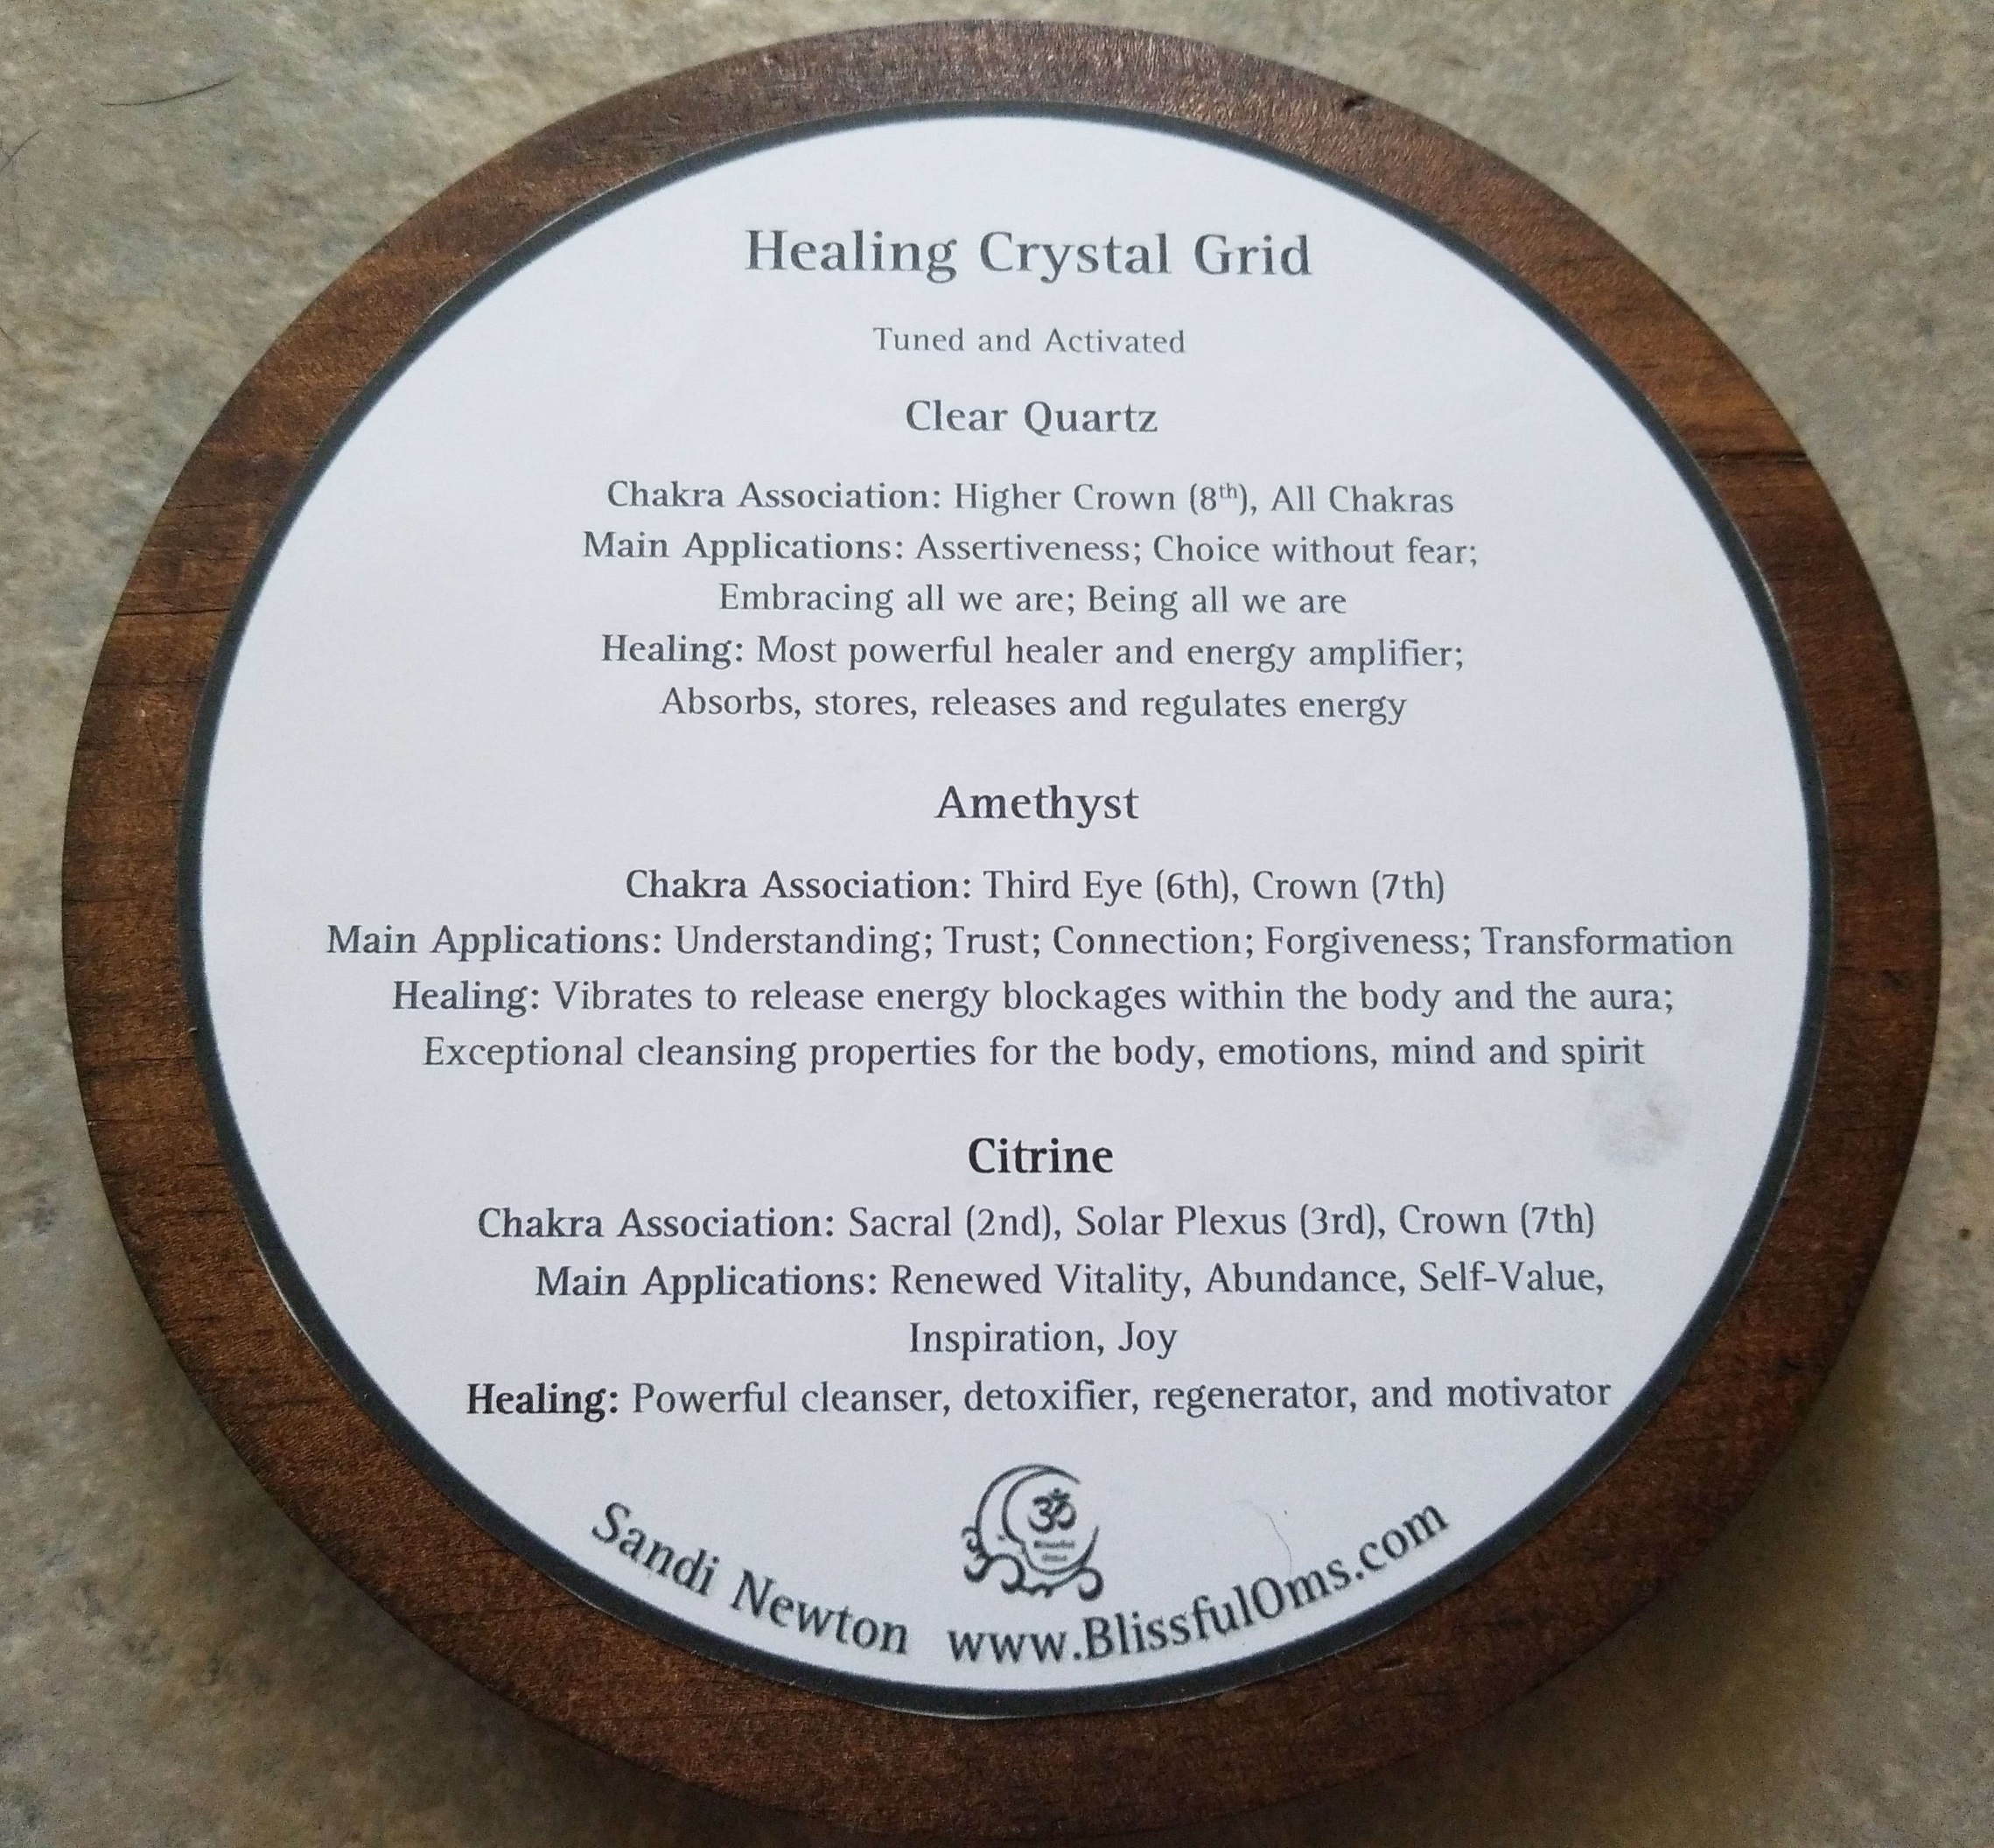 Crystal Grid-Wooden Plaque Info